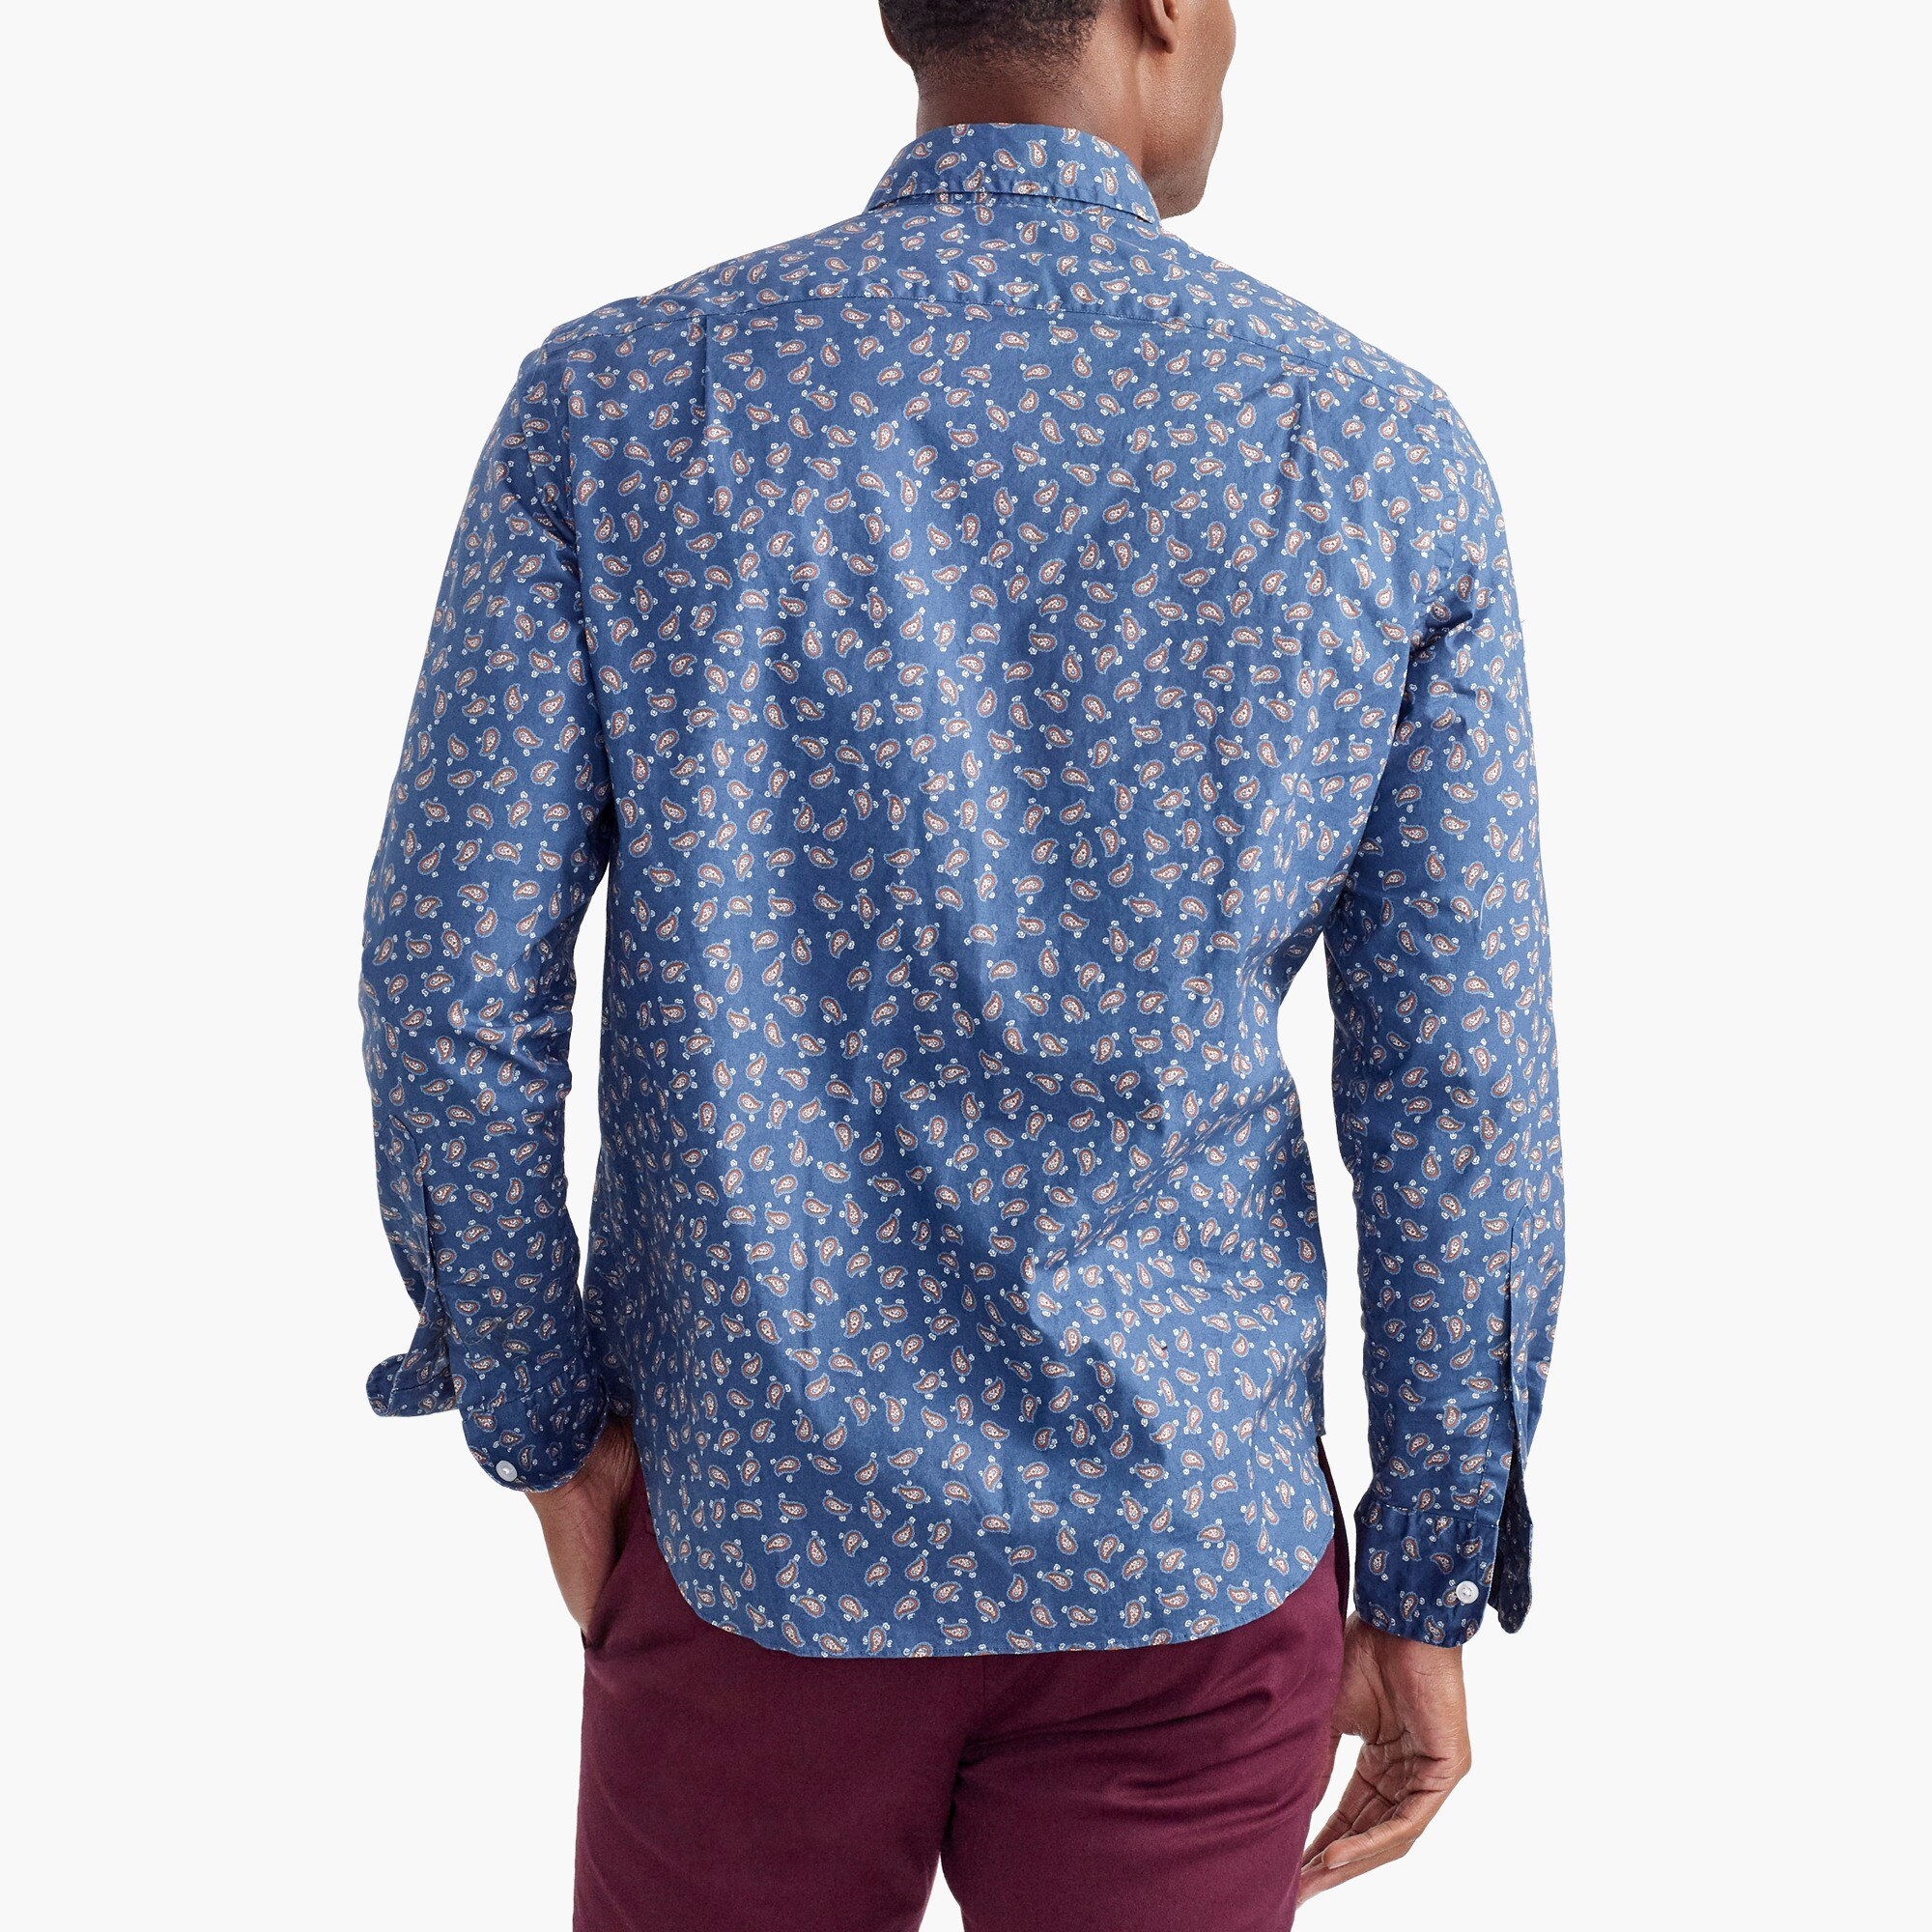 Image 3 for Classic flex washed shirt in print